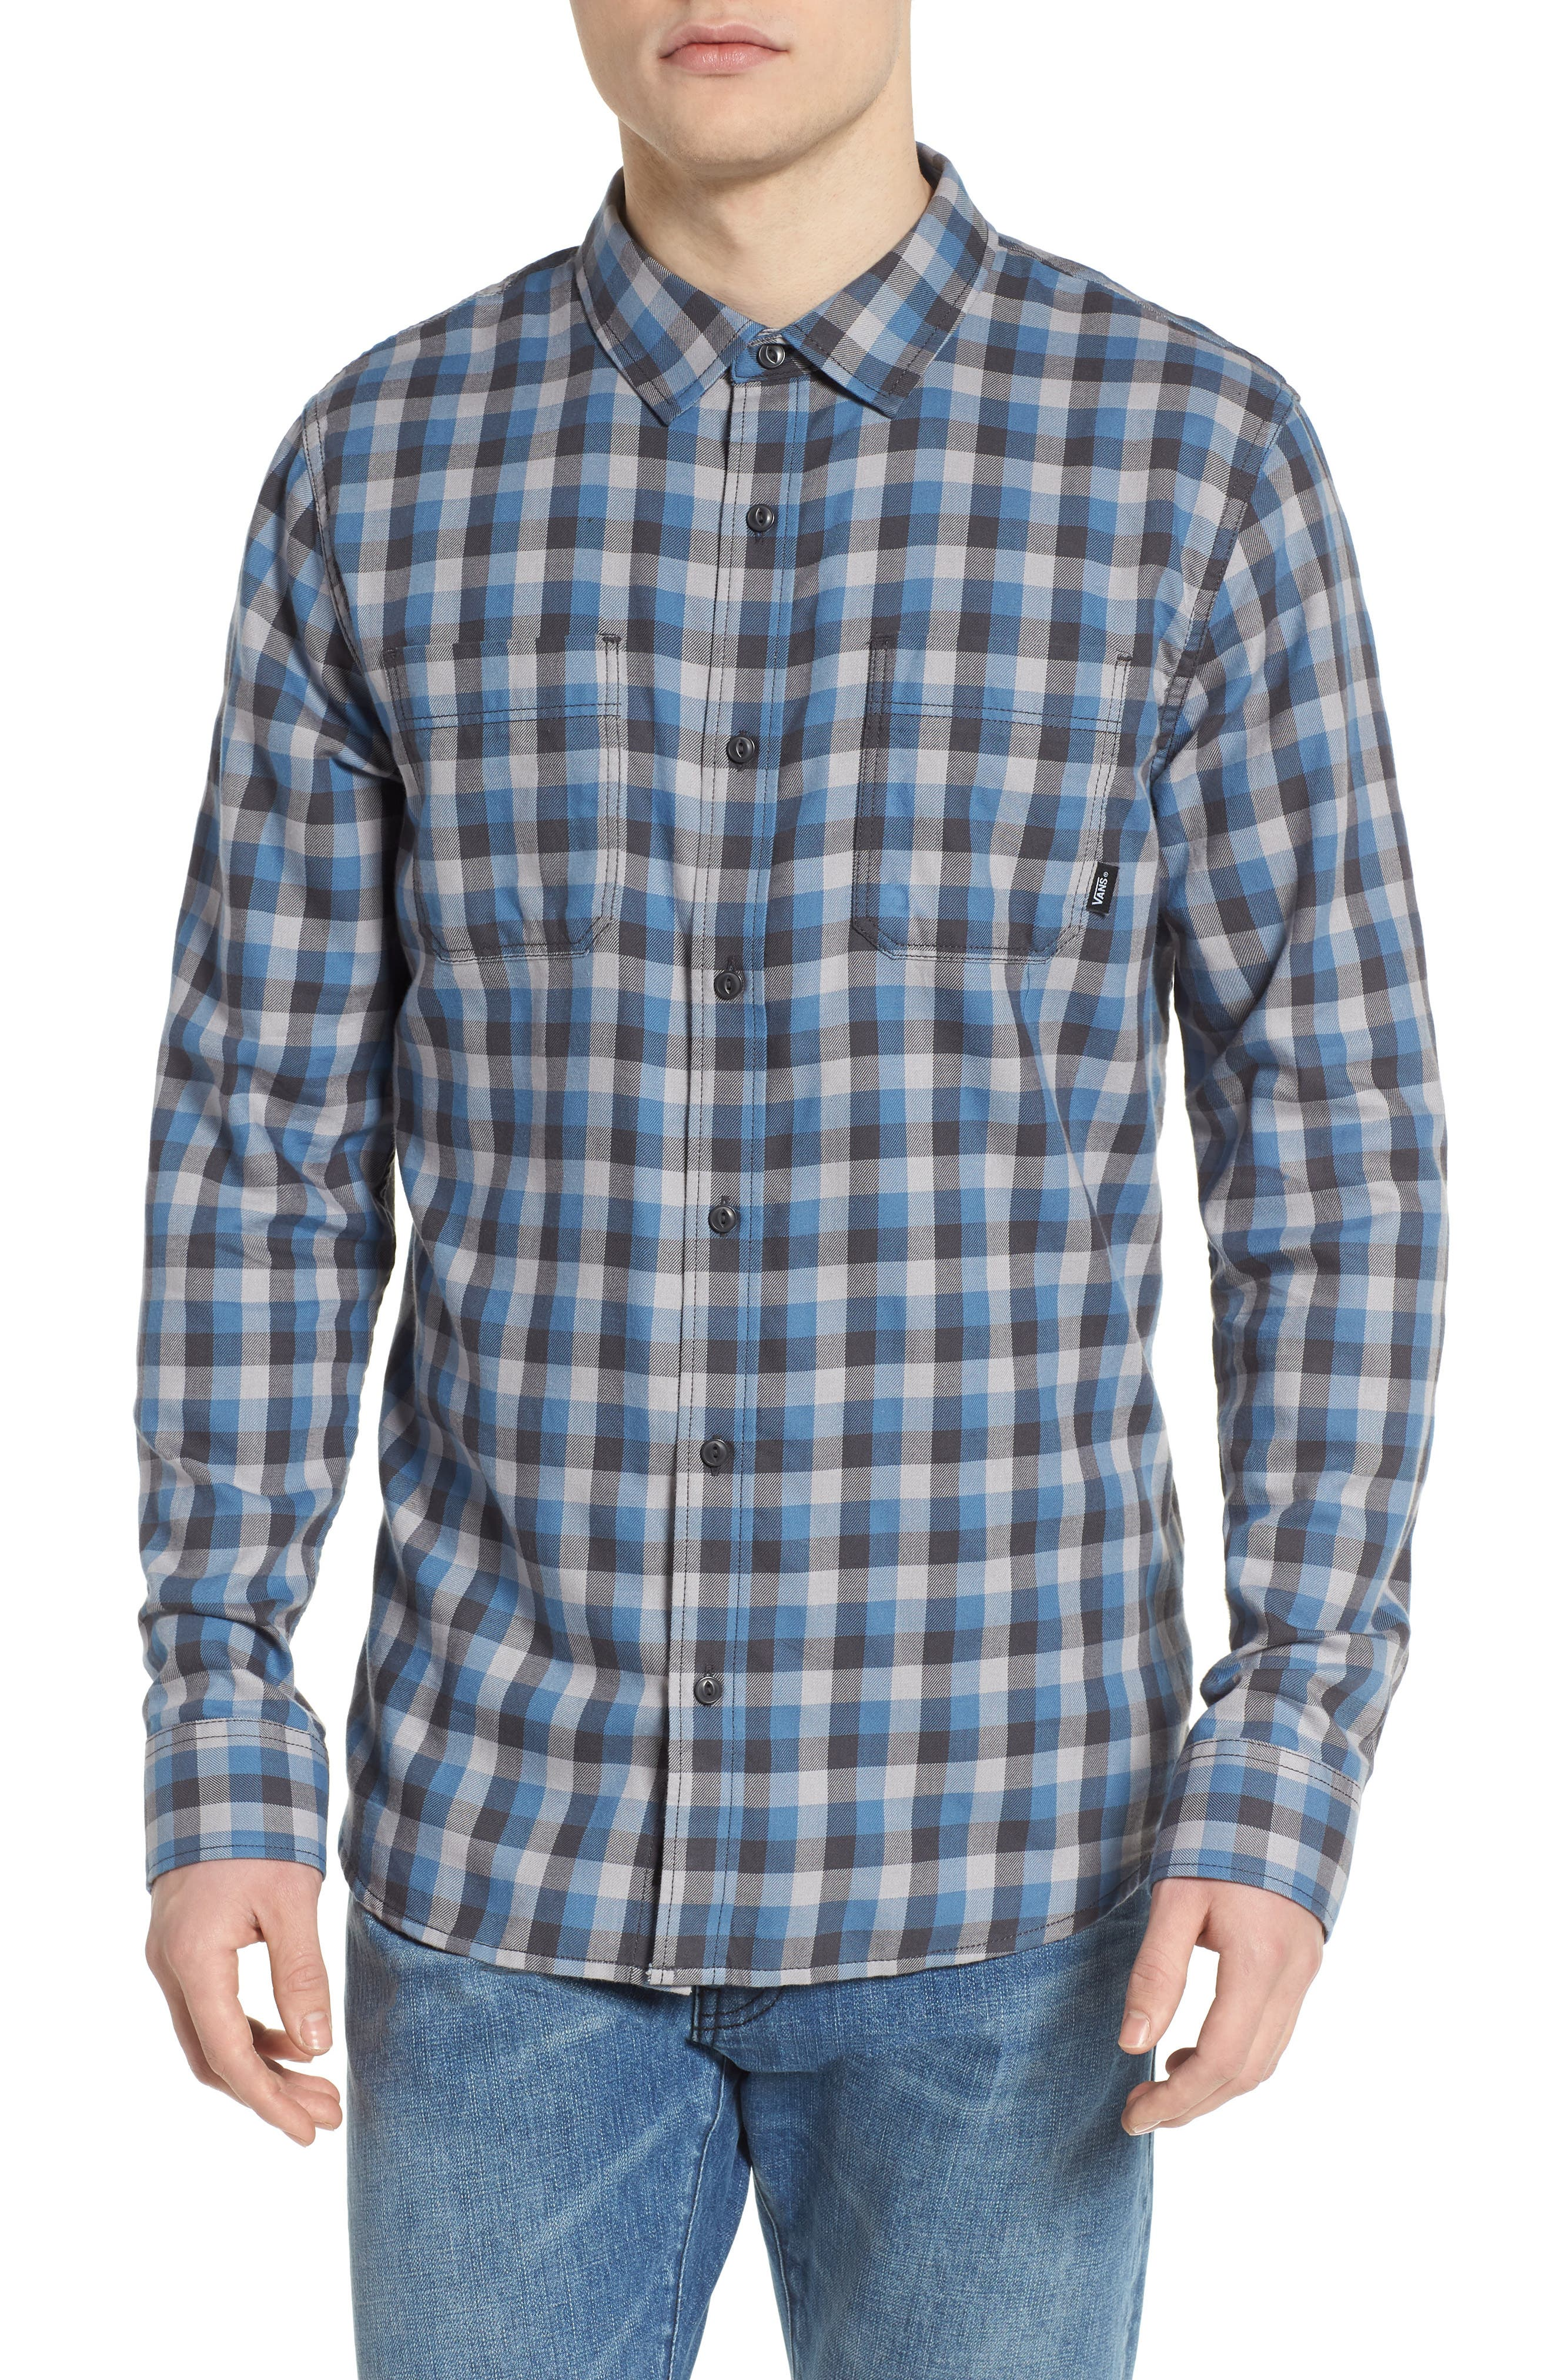 Alameda II Plaid Flannel Shirt,                         Main,                         color, Asphalt/ Copen Blue